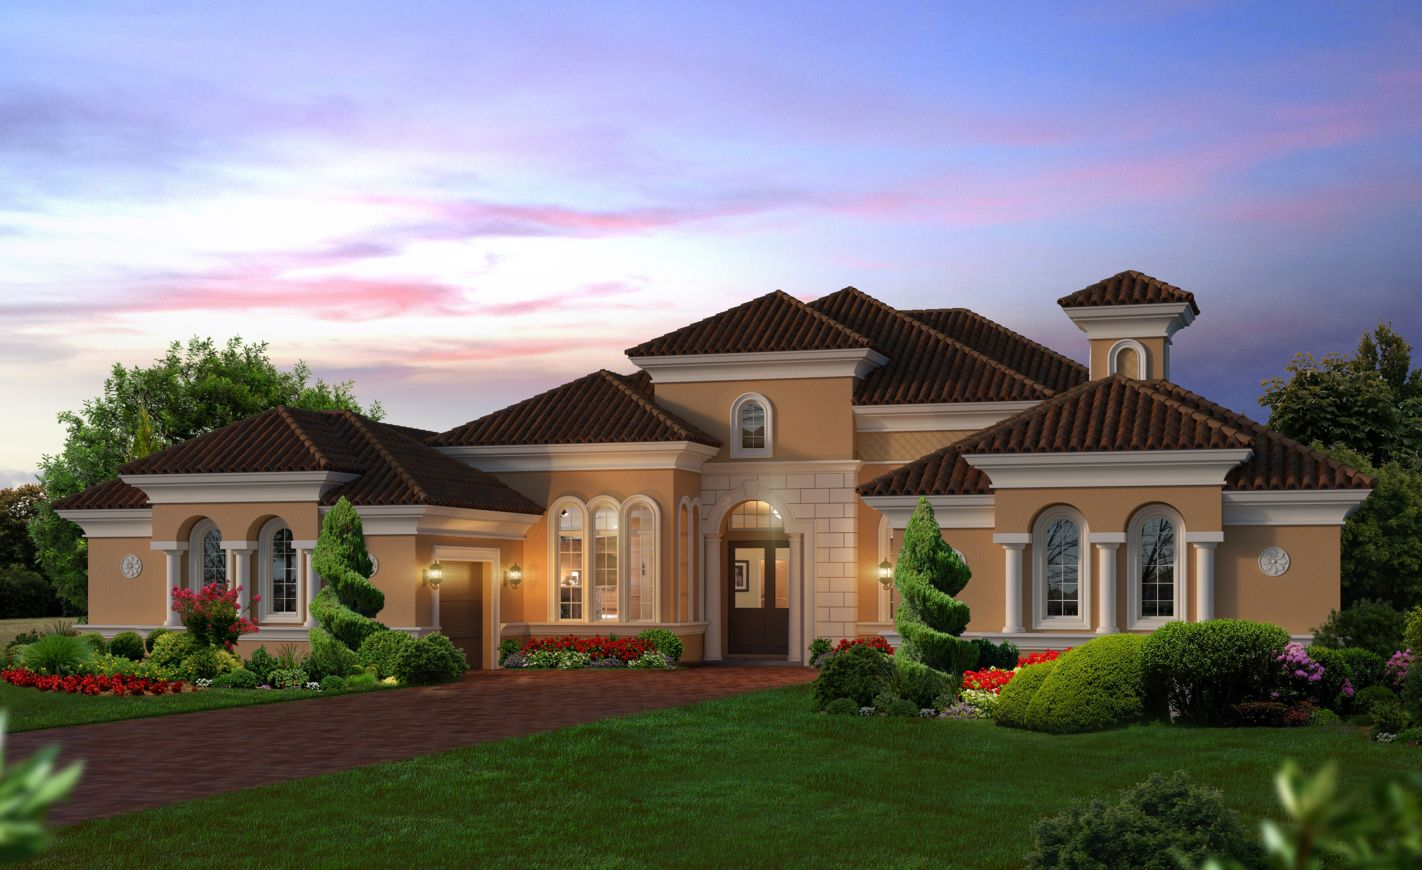 New Homes for Sale Ormond Beach FL - The Bordeaux at Plantation Bay